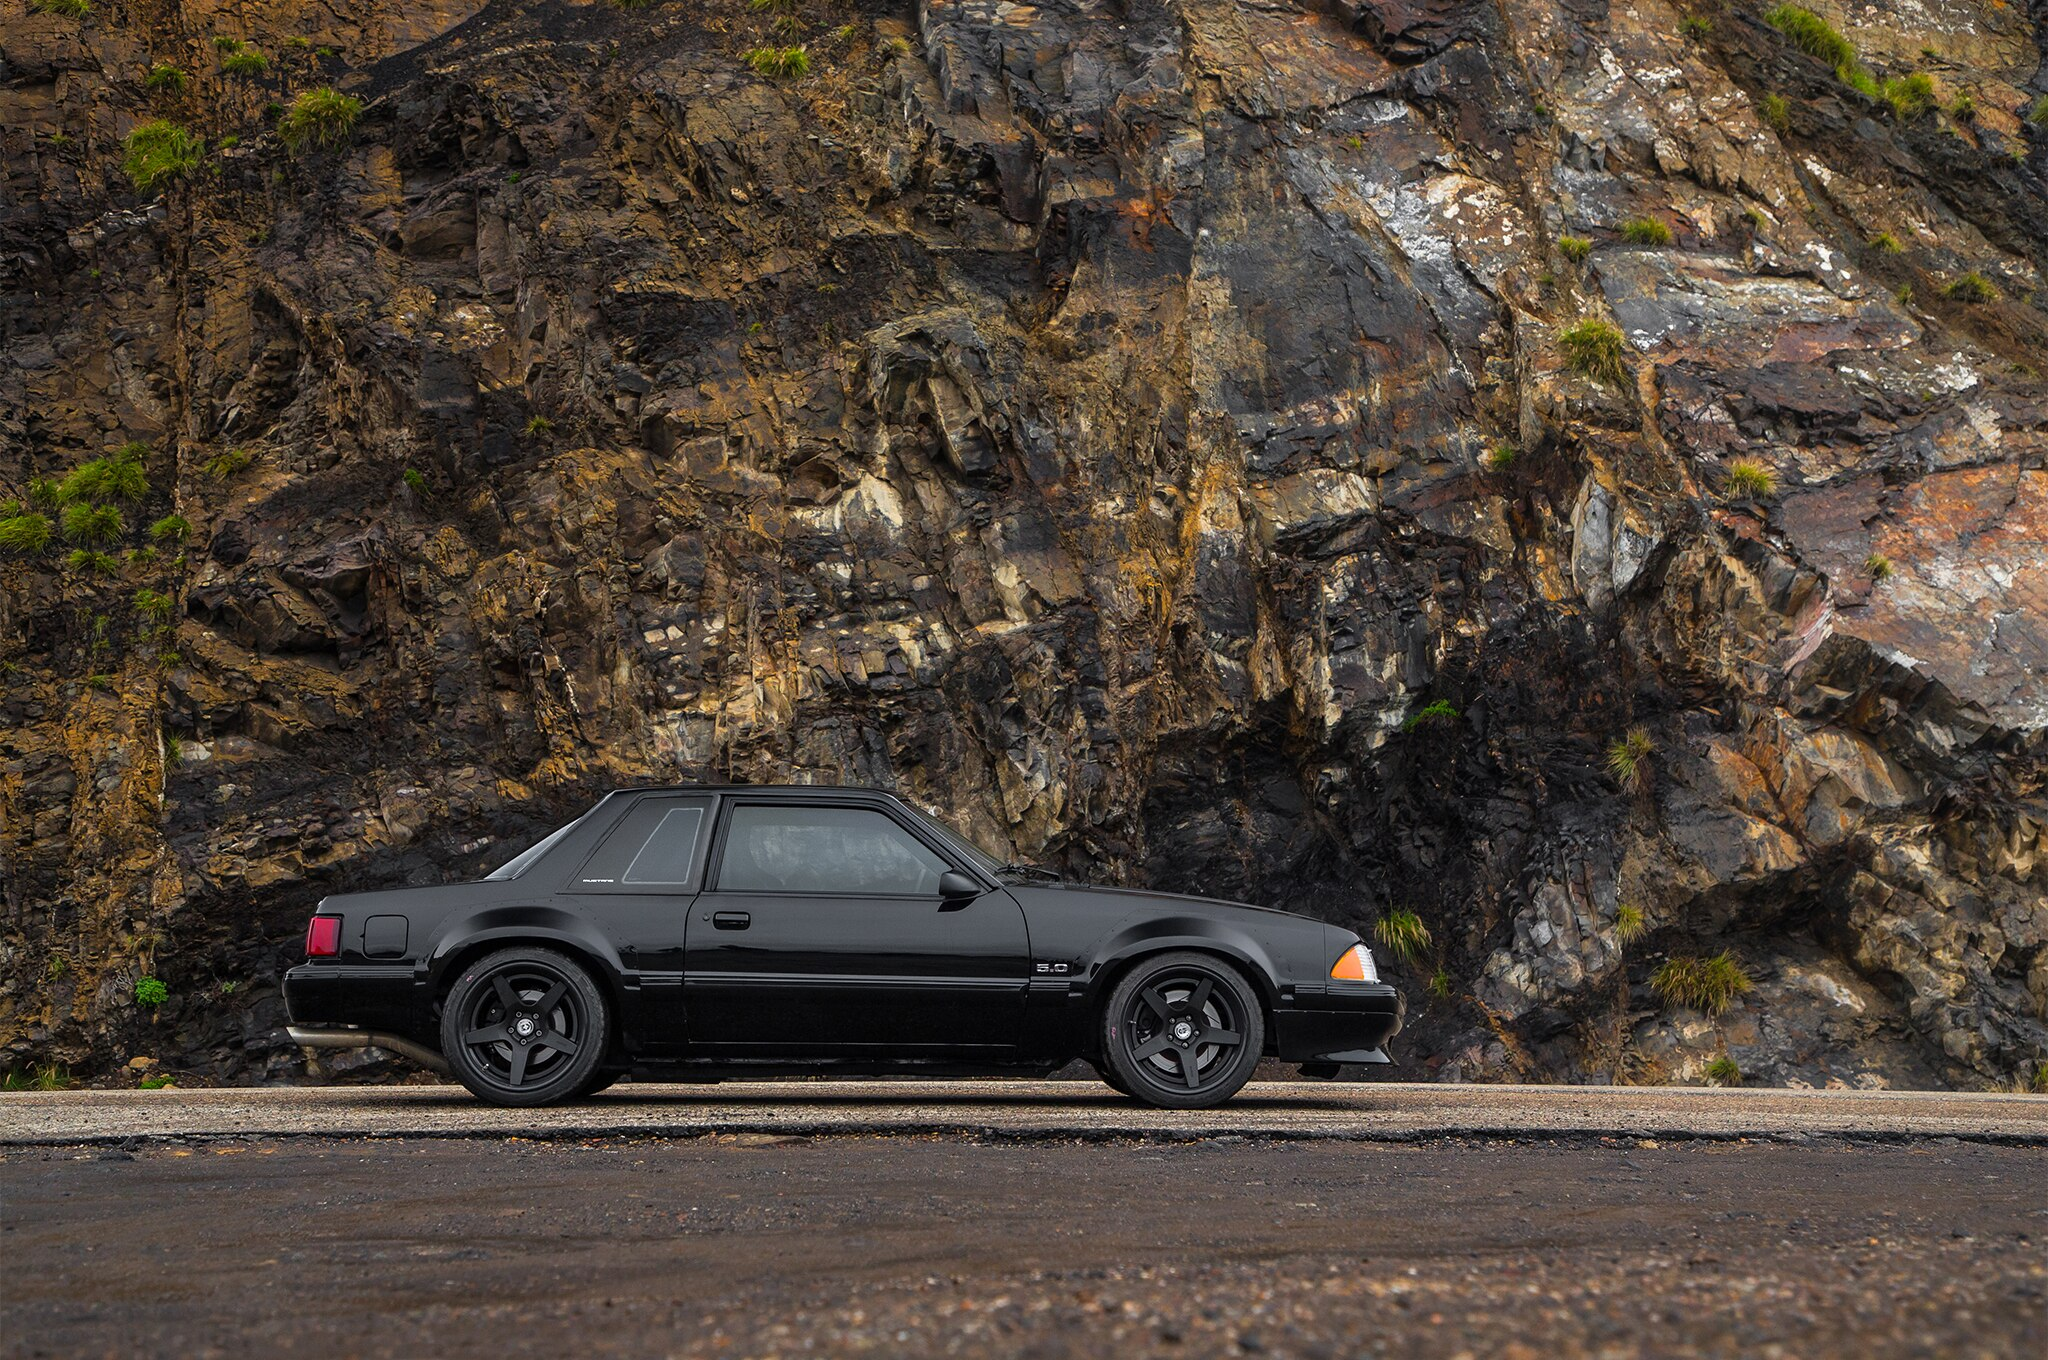 1988 Ford Mustang LX 5 0 SSP Side Profile